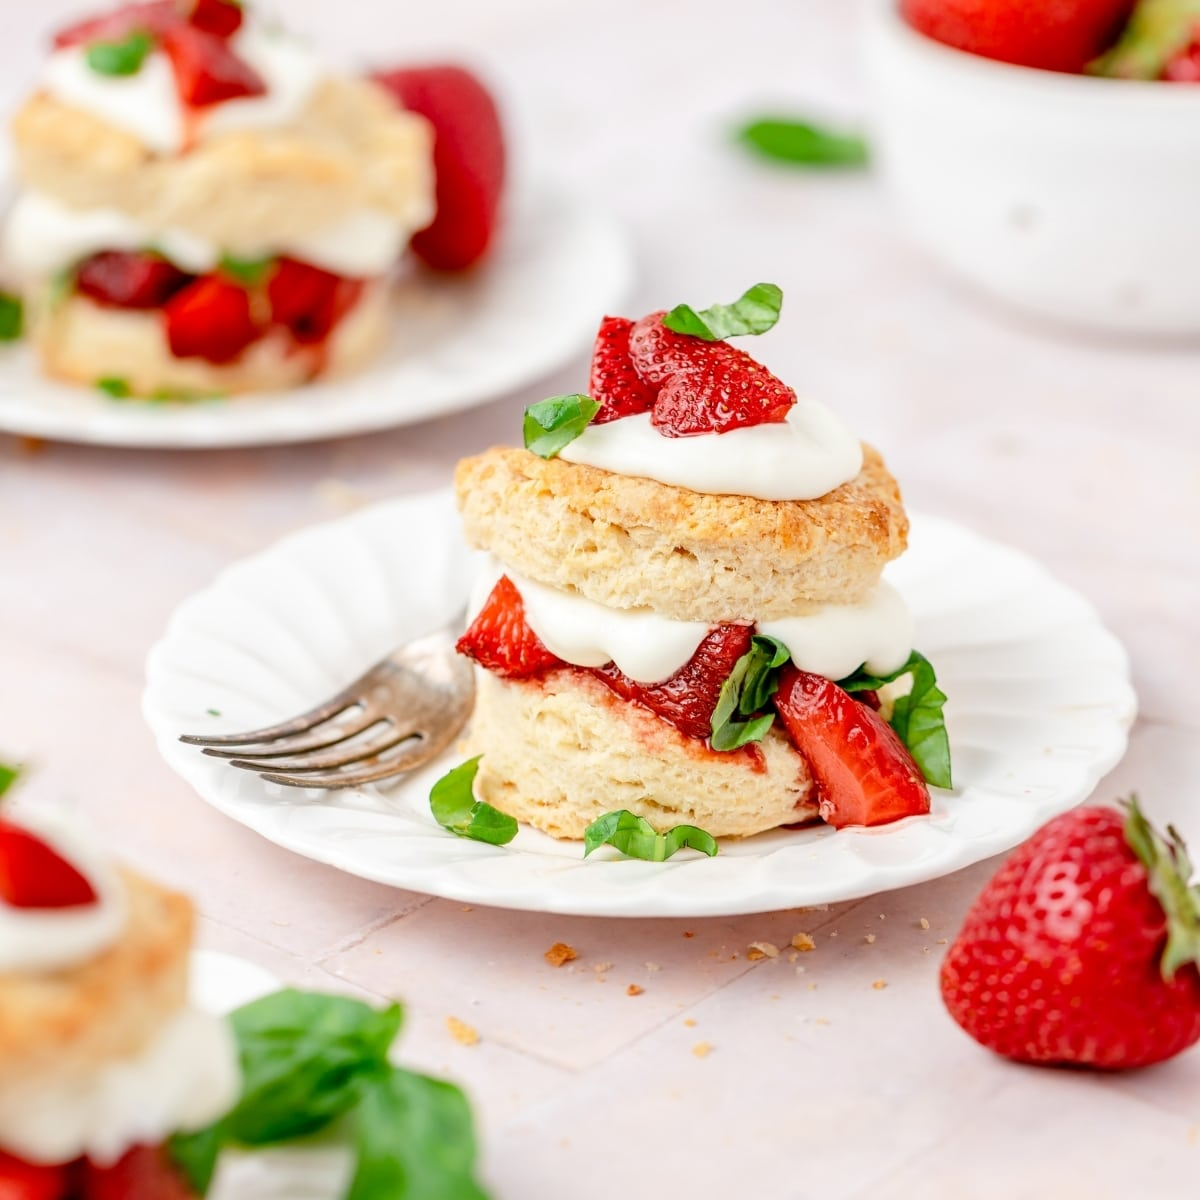 balsamic roasted strawberry shortcake with whipped cream